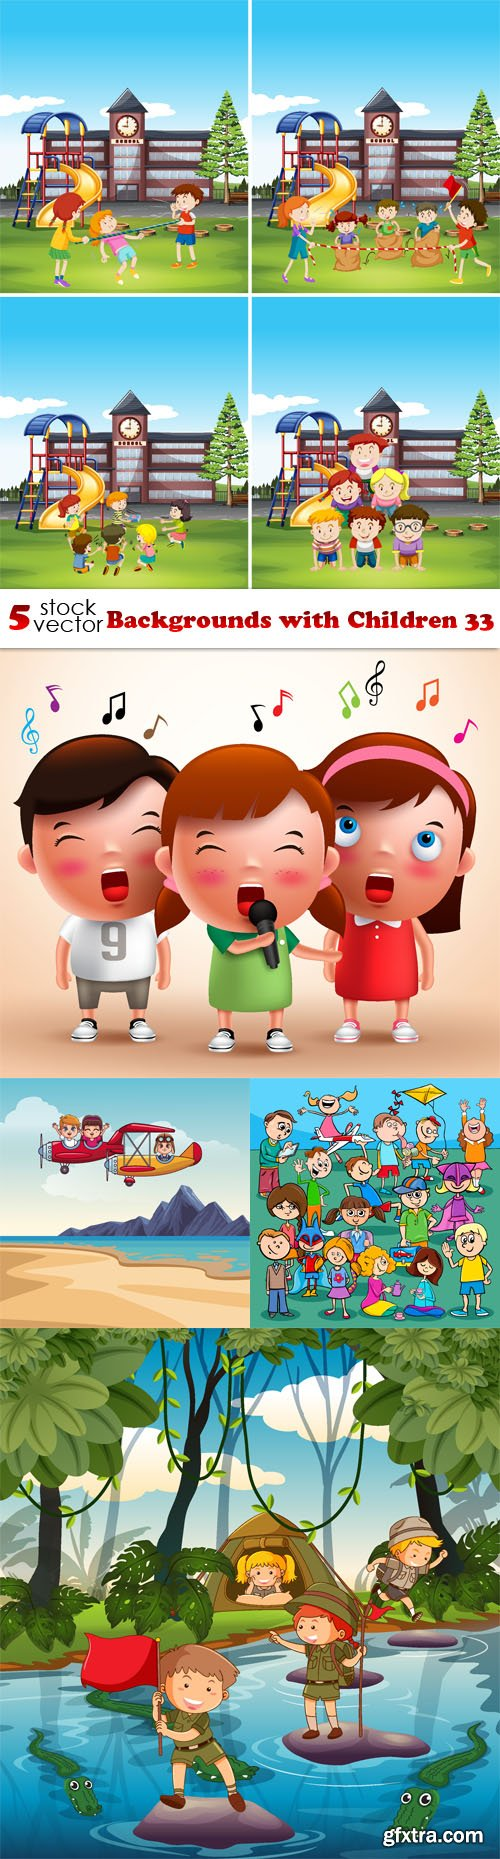 Vectors - Backgrounds with Children 33